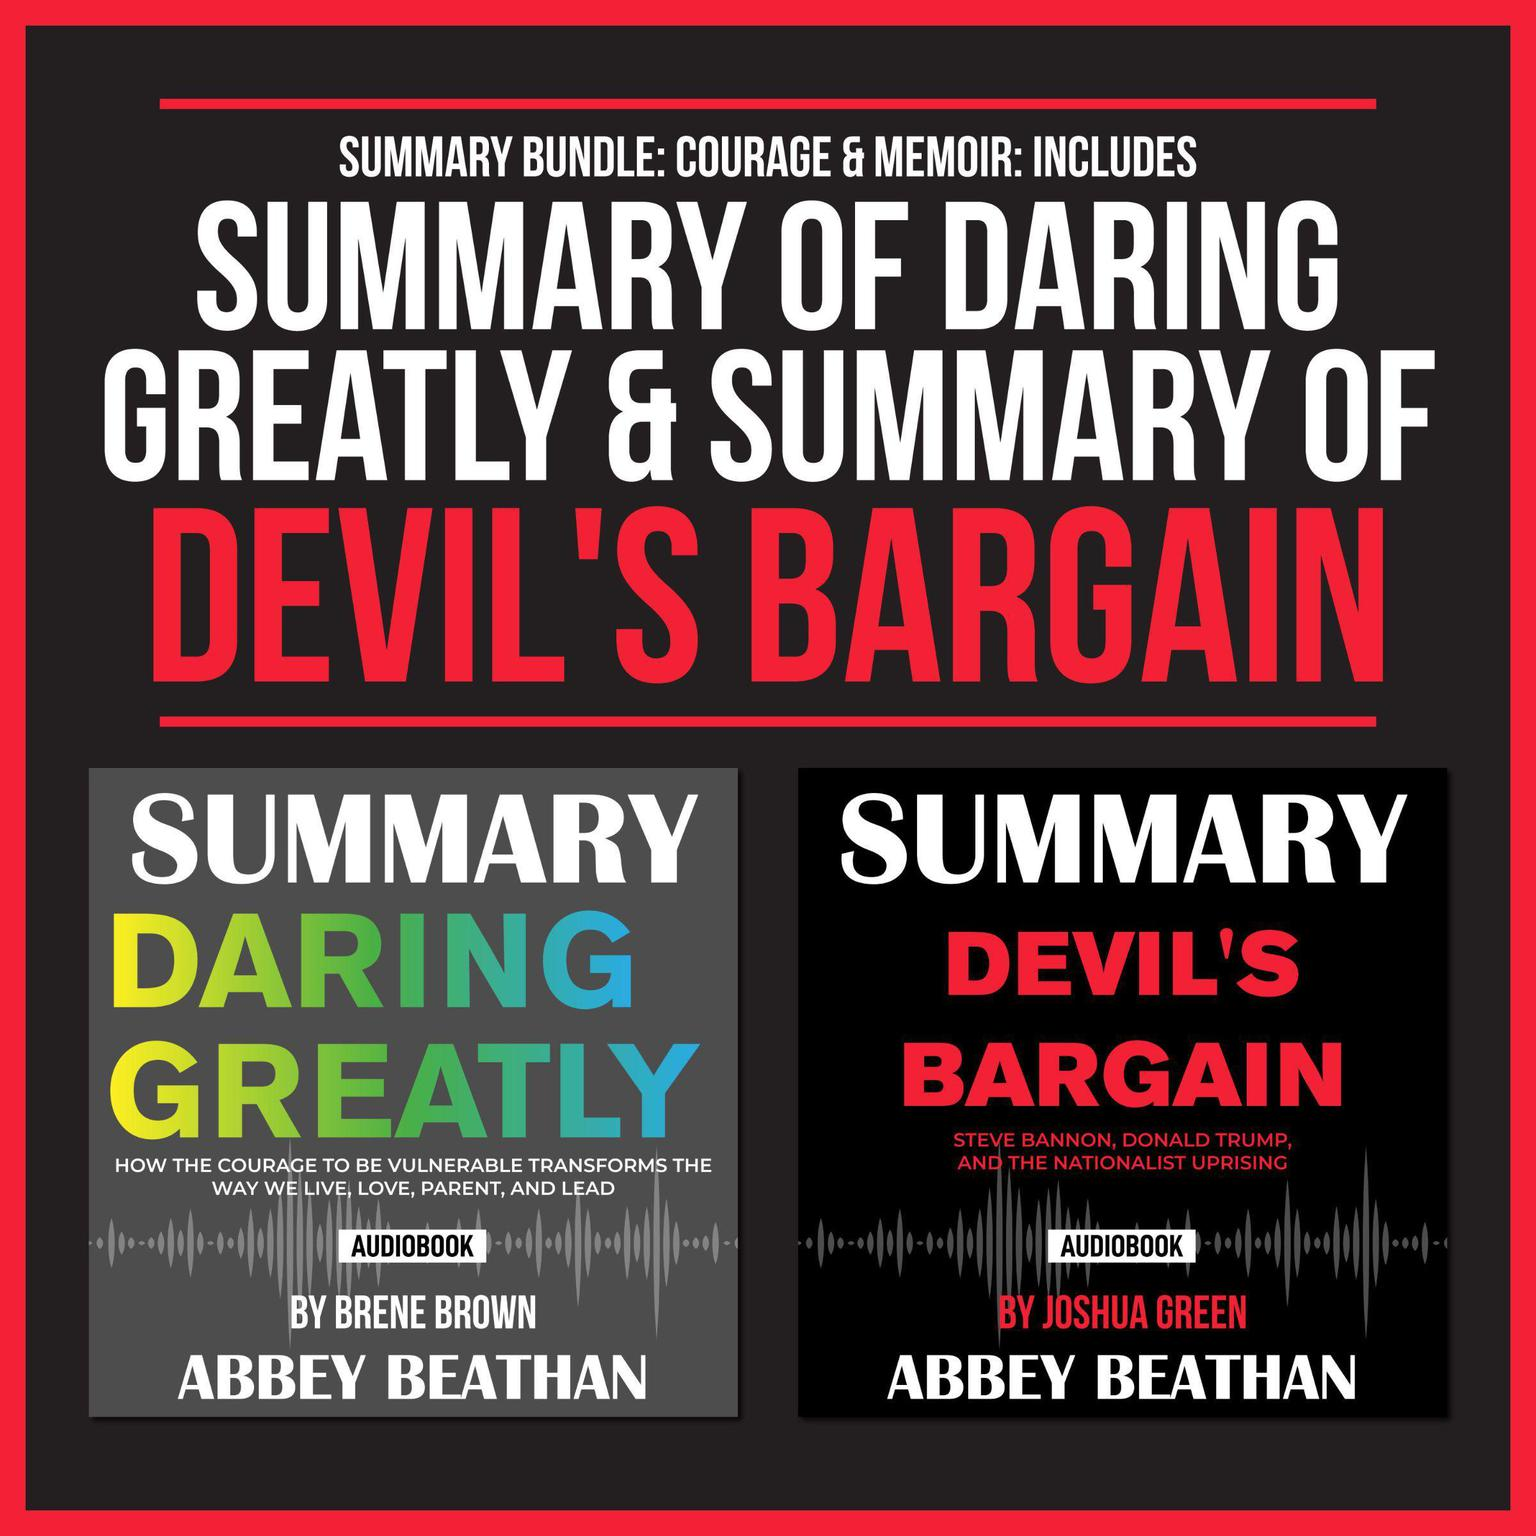 Summary Bundle: Courage & Memoir: Includes Summary of Daring Greatly & Summary of Devils Bargain Audiobook, by Abbey Beathan